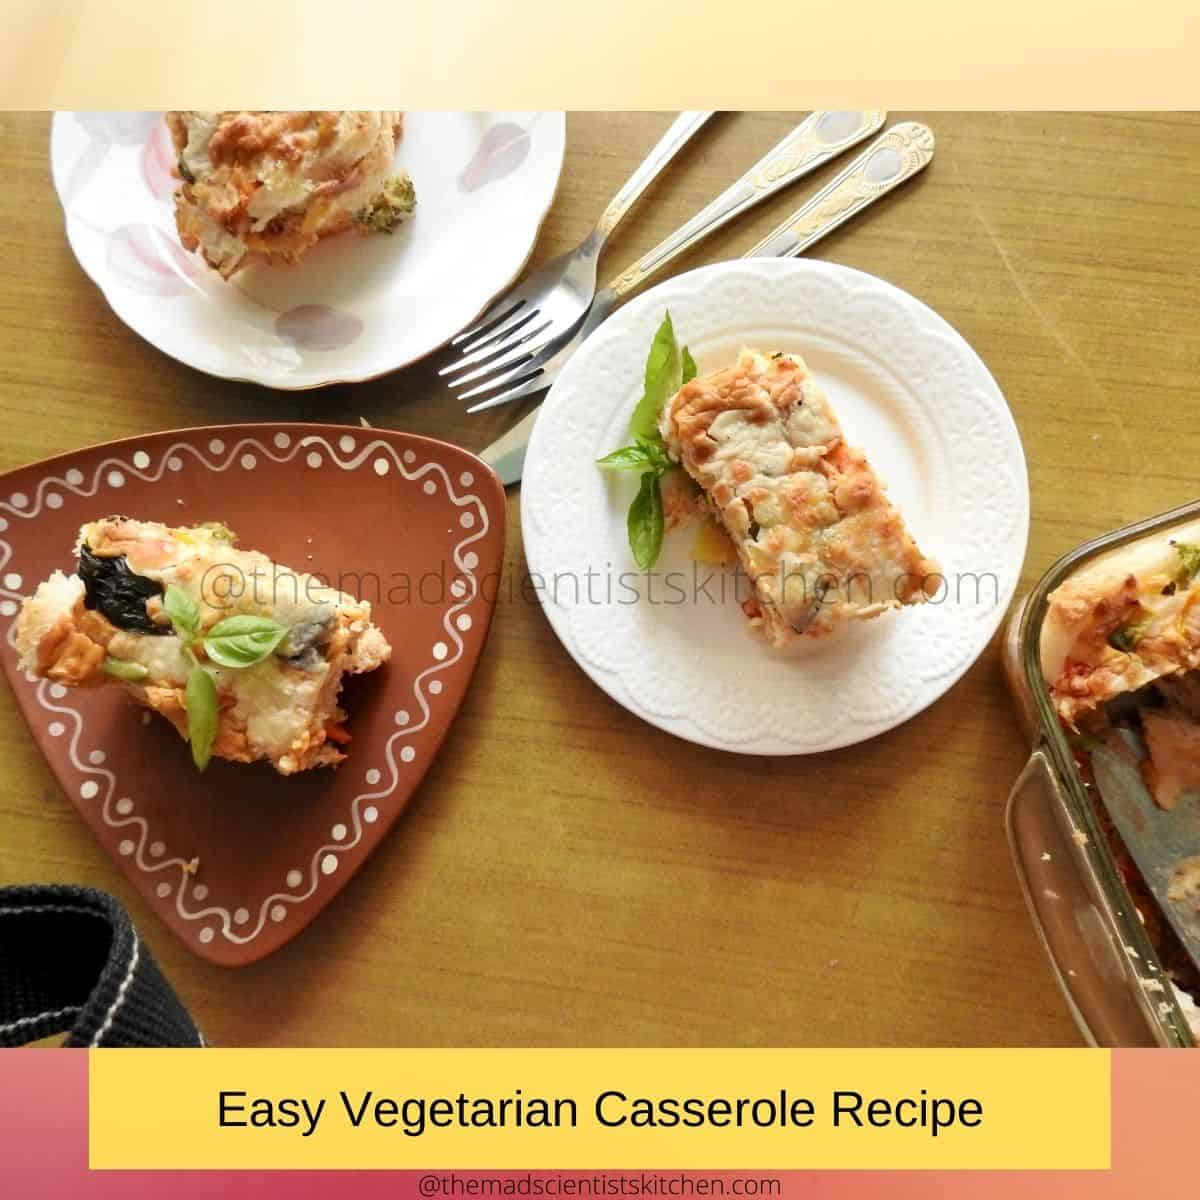 Easy Vegetarian Casserole Recipe served